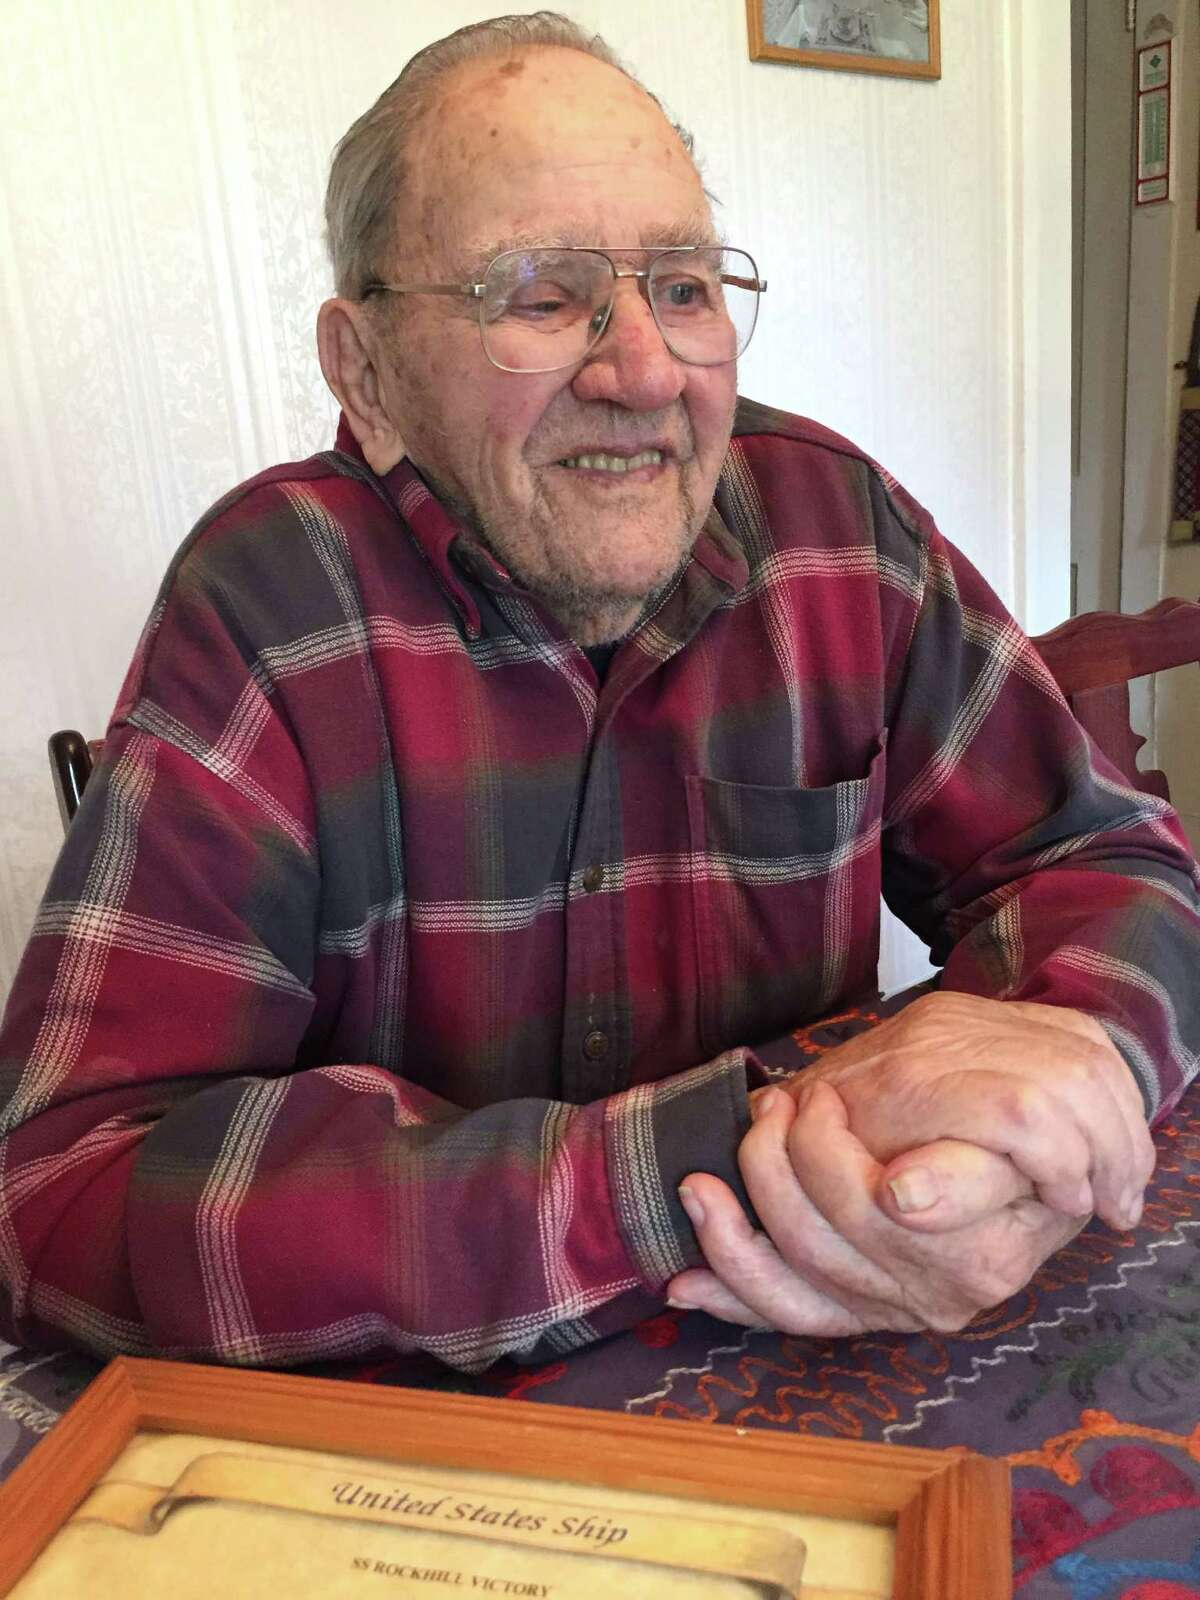 Former Army Pfc. Thomas L. Youngs, 92, a Battle of the Bulge survivor, in his Schoharie home on Nov. 2, 2015. (Dennis YuskoTimes Union)